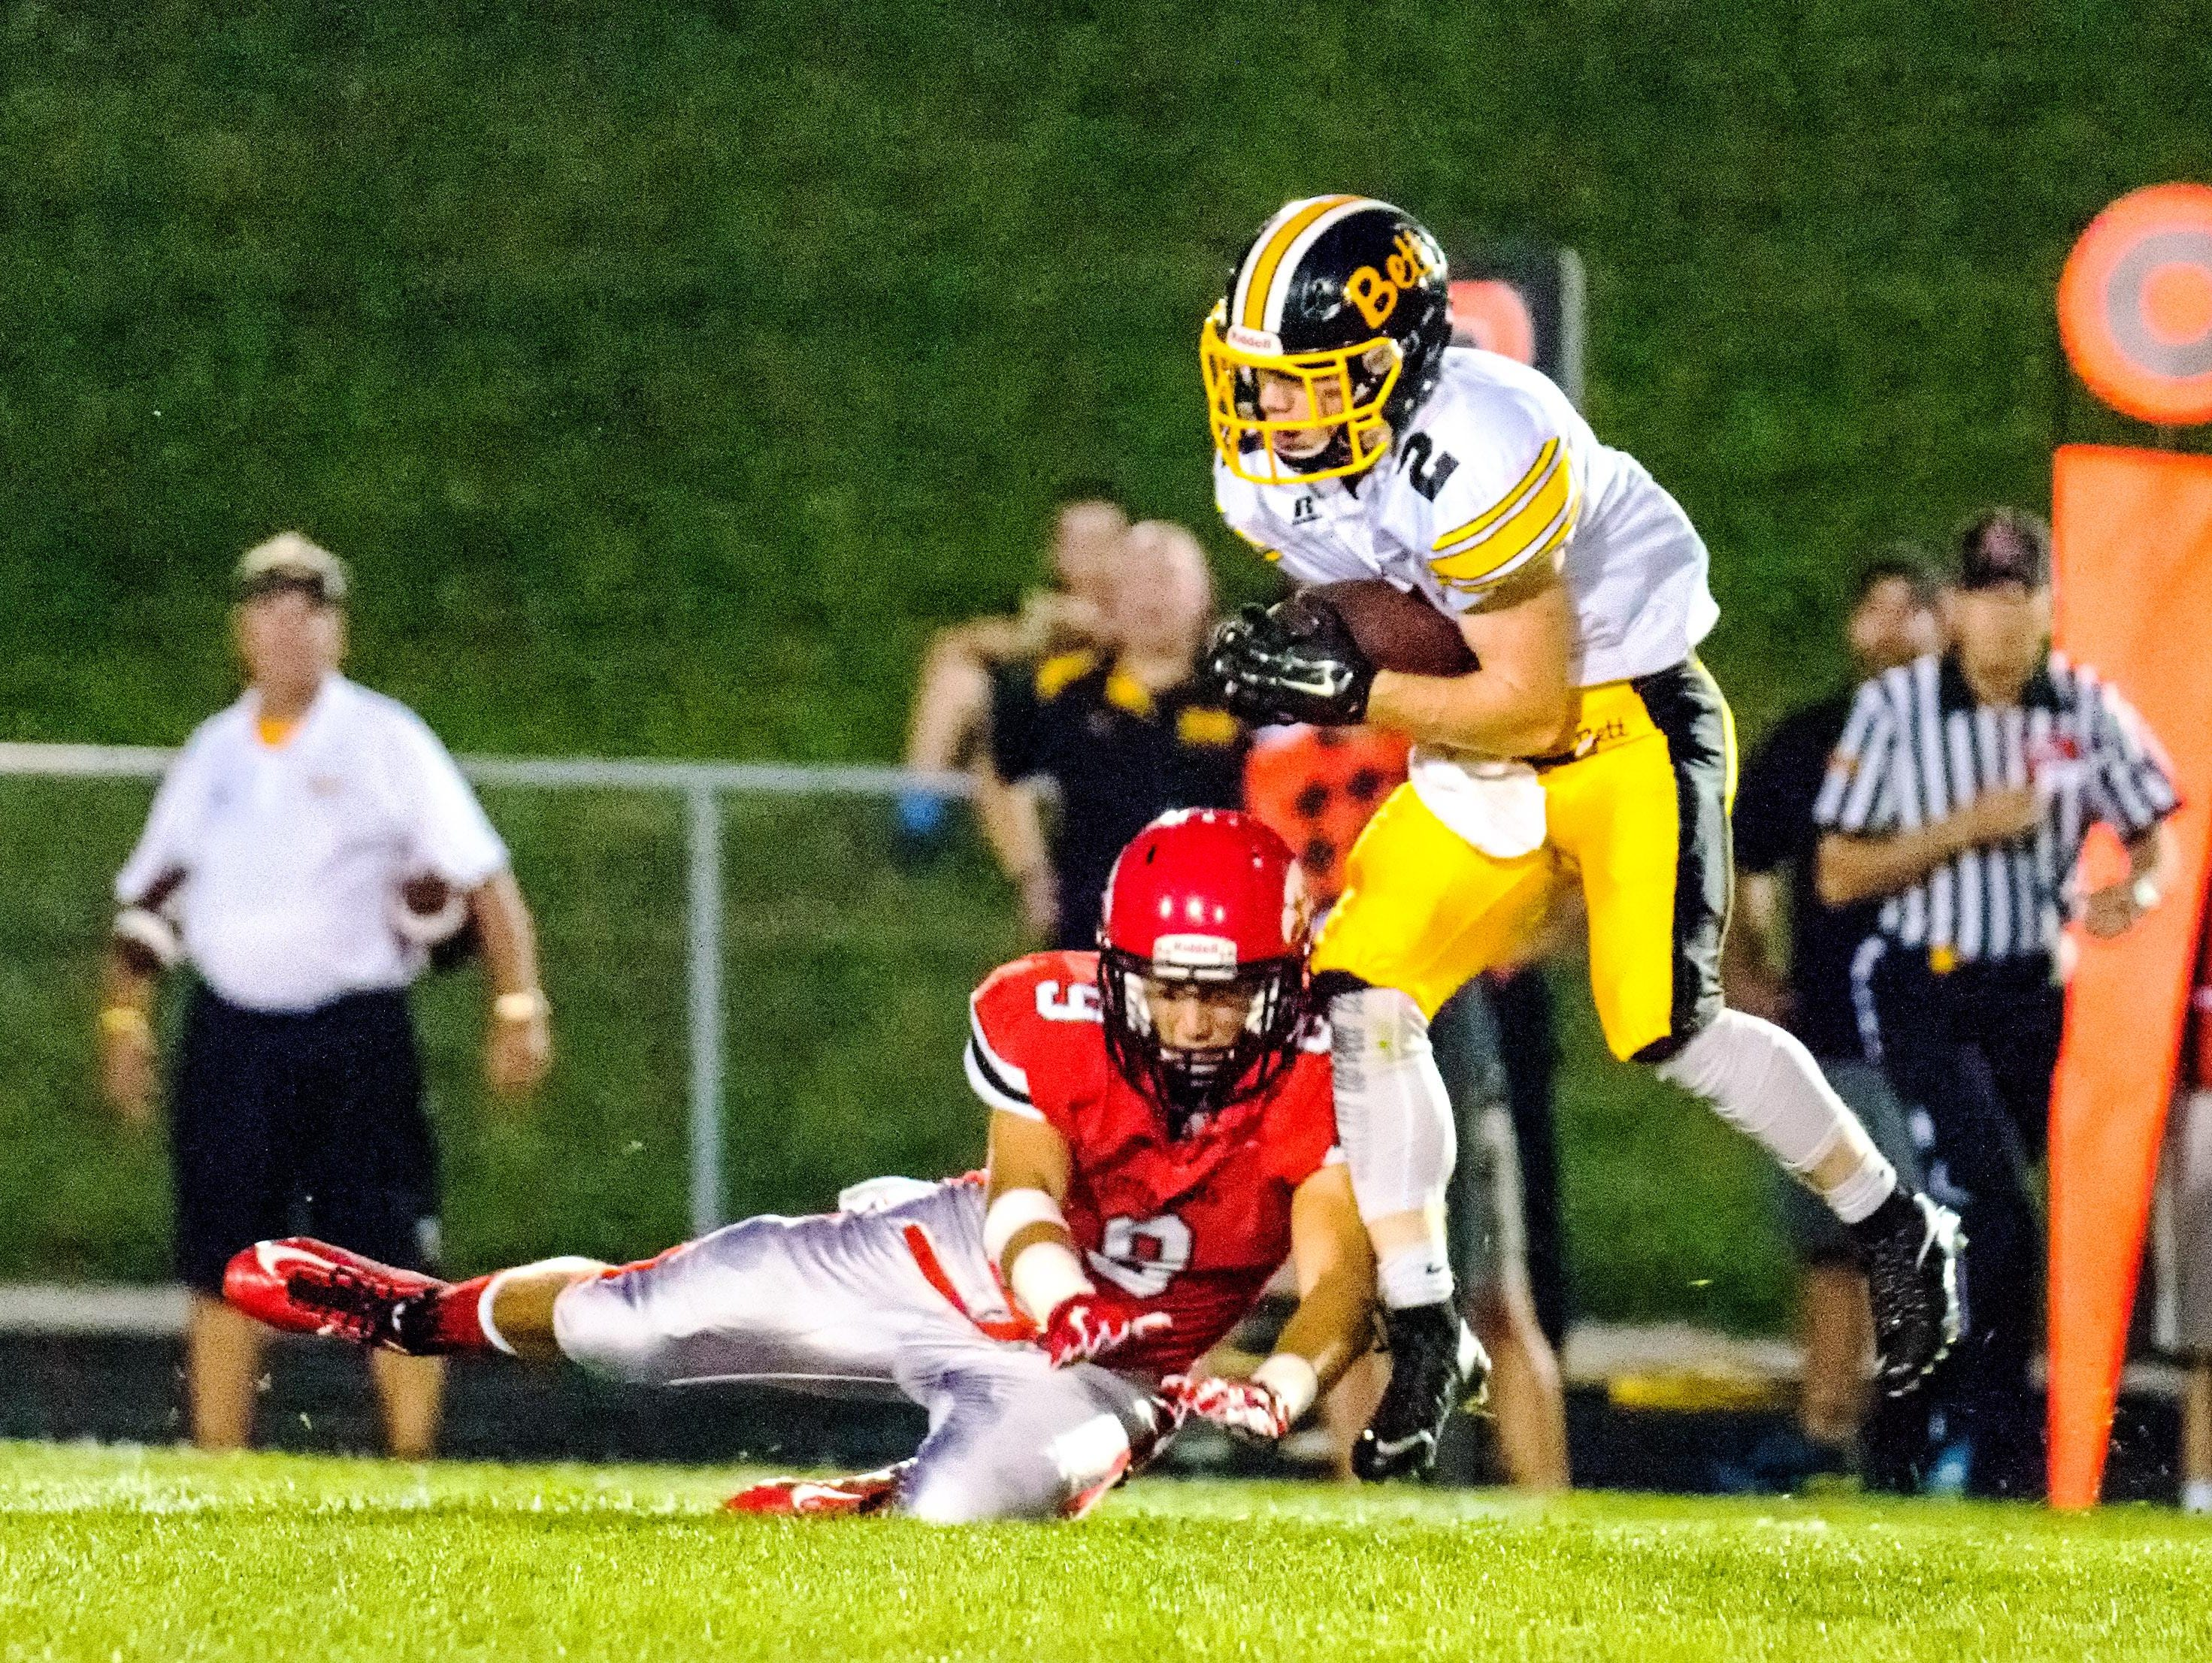 Bettendorf's Matt Wolfe (2) intercepts a pass intended for Griffin Moore (9) at Bates Field in Iowa City on Friday. Bettendorf had three interceptions on the evening and beat the Little Hawks 44-7.